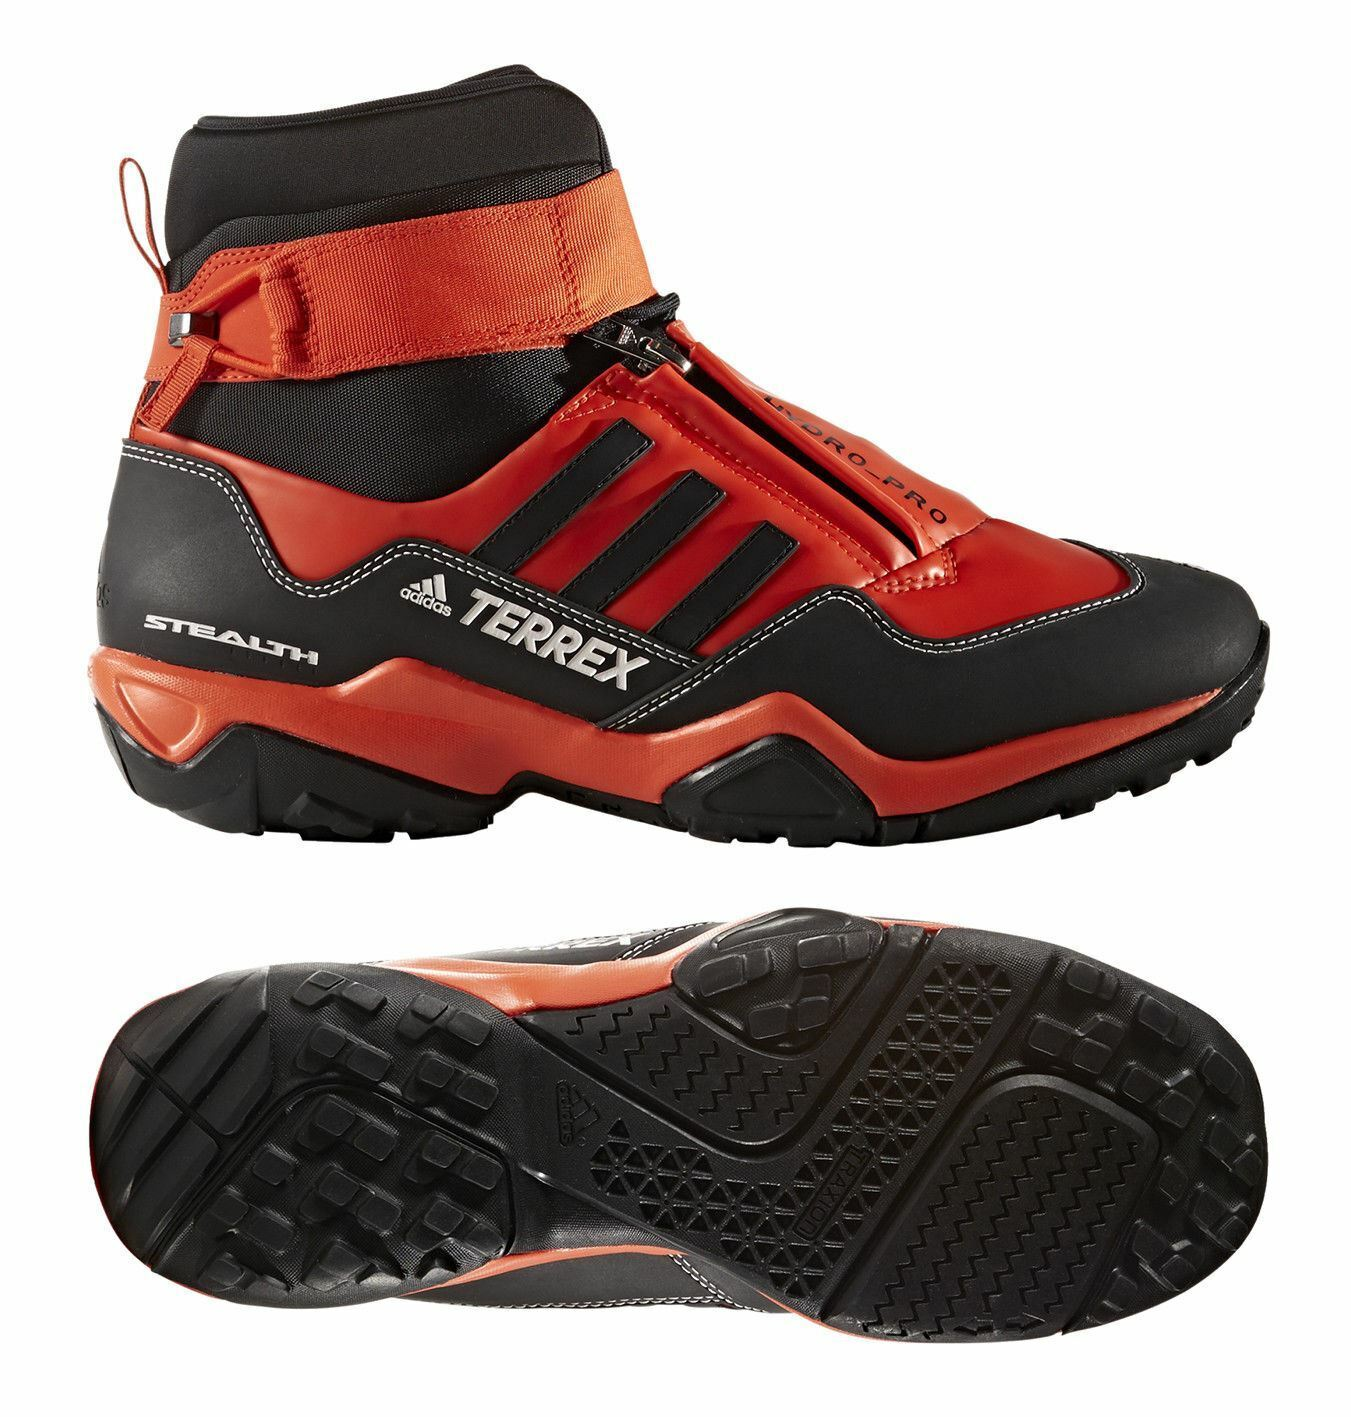 Adidas Terrex Hydro Pro BA9184 Mens BootsOutdoorHikingUK Limited Sizes Only